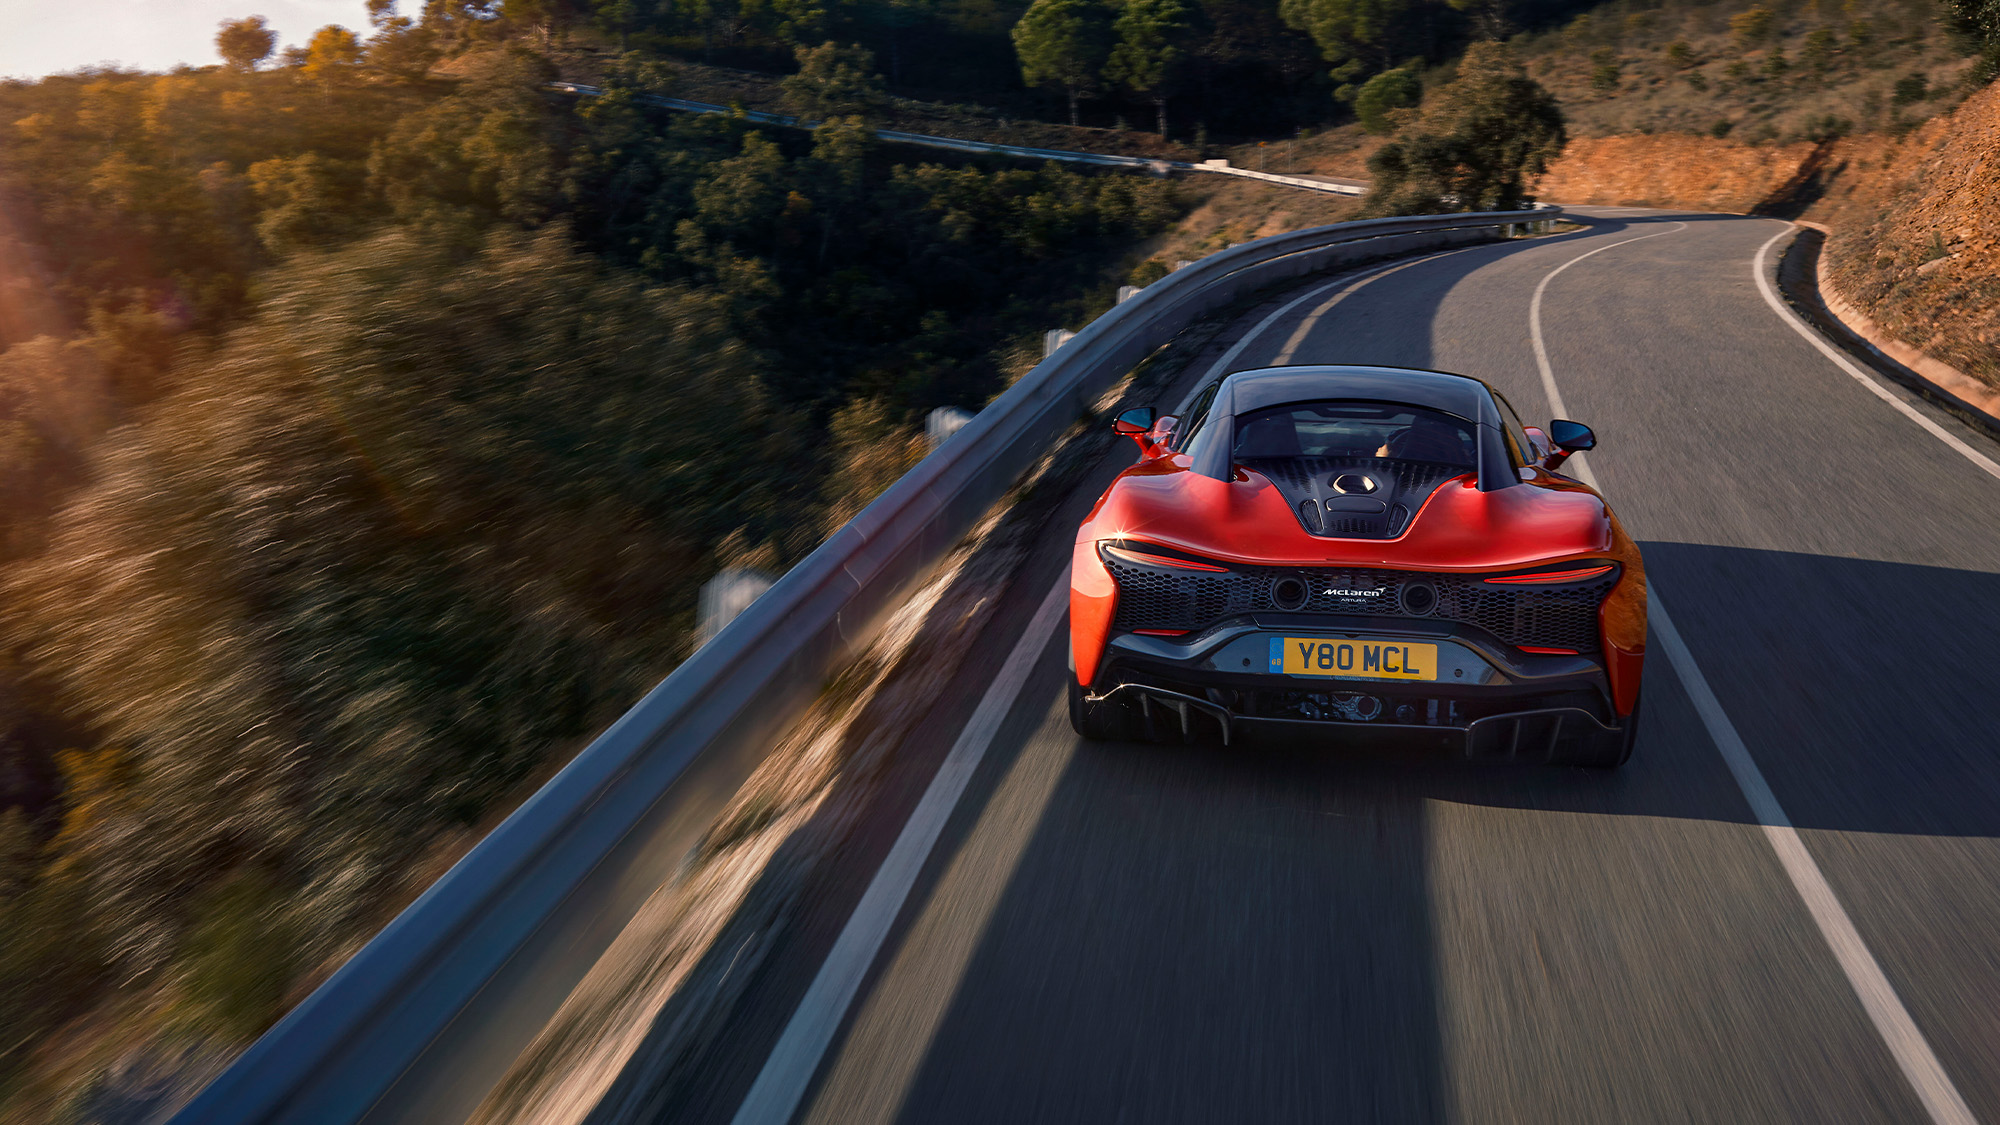 2021 McLaren Artura rear on road